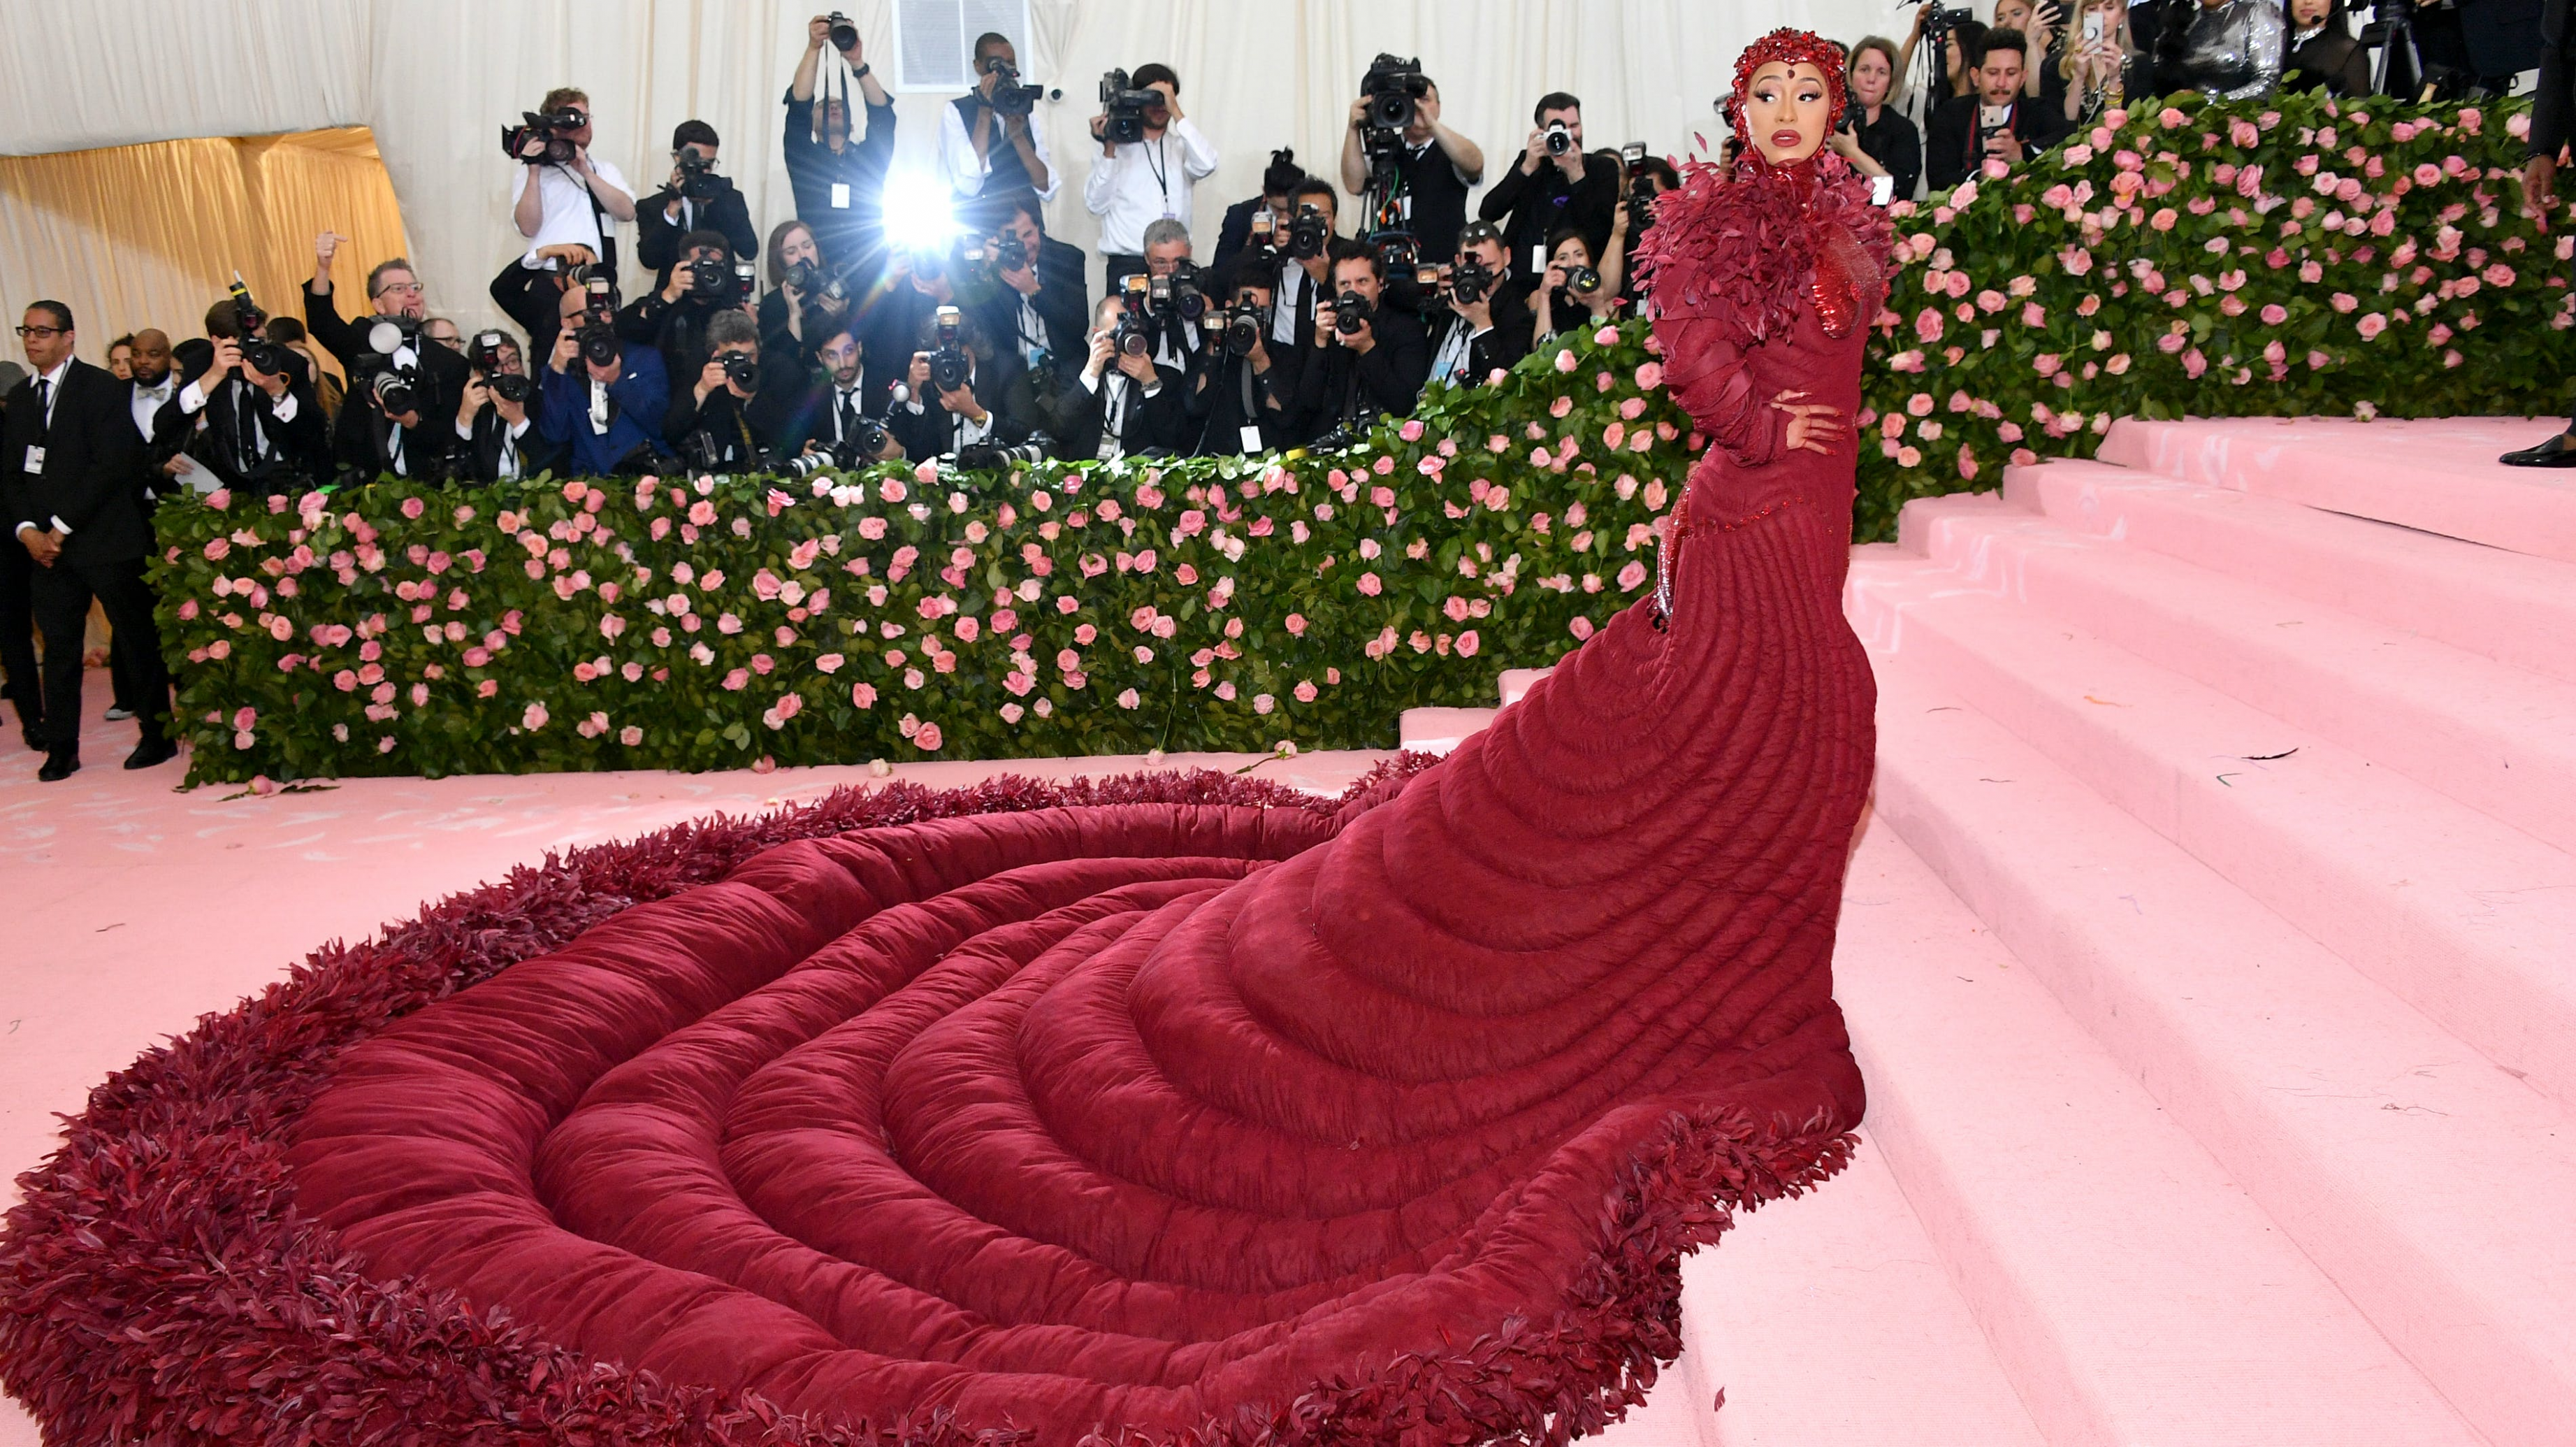 The Best Met Gala Looks of All Time - Fashionista